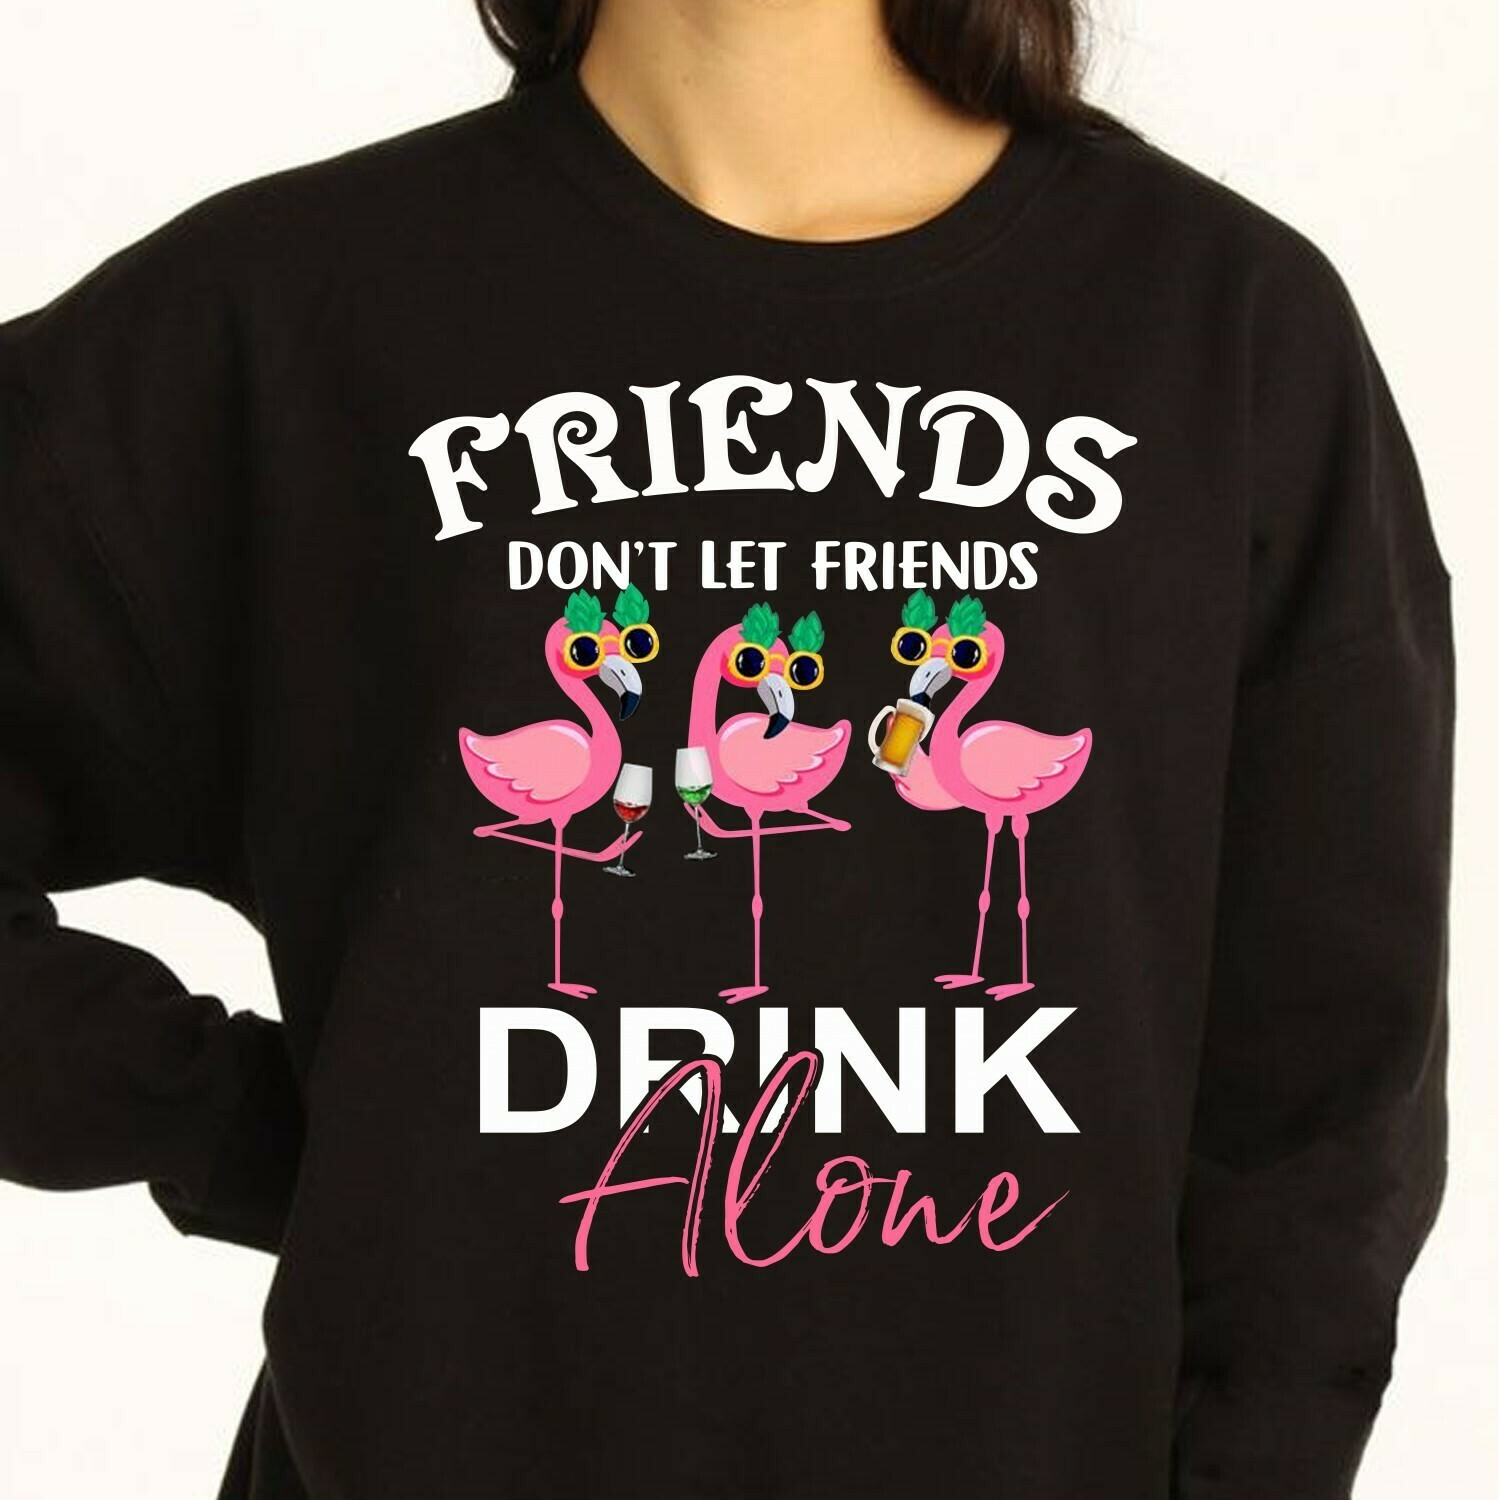 Friends Don't Let Friends Drink Alone -  Funny Flamingo Drink Wine Party Vacation Gift For Friends Team Group Girls T Shirt Long Sleeve Sweatshirt Hoodie Jolly Family Gifts